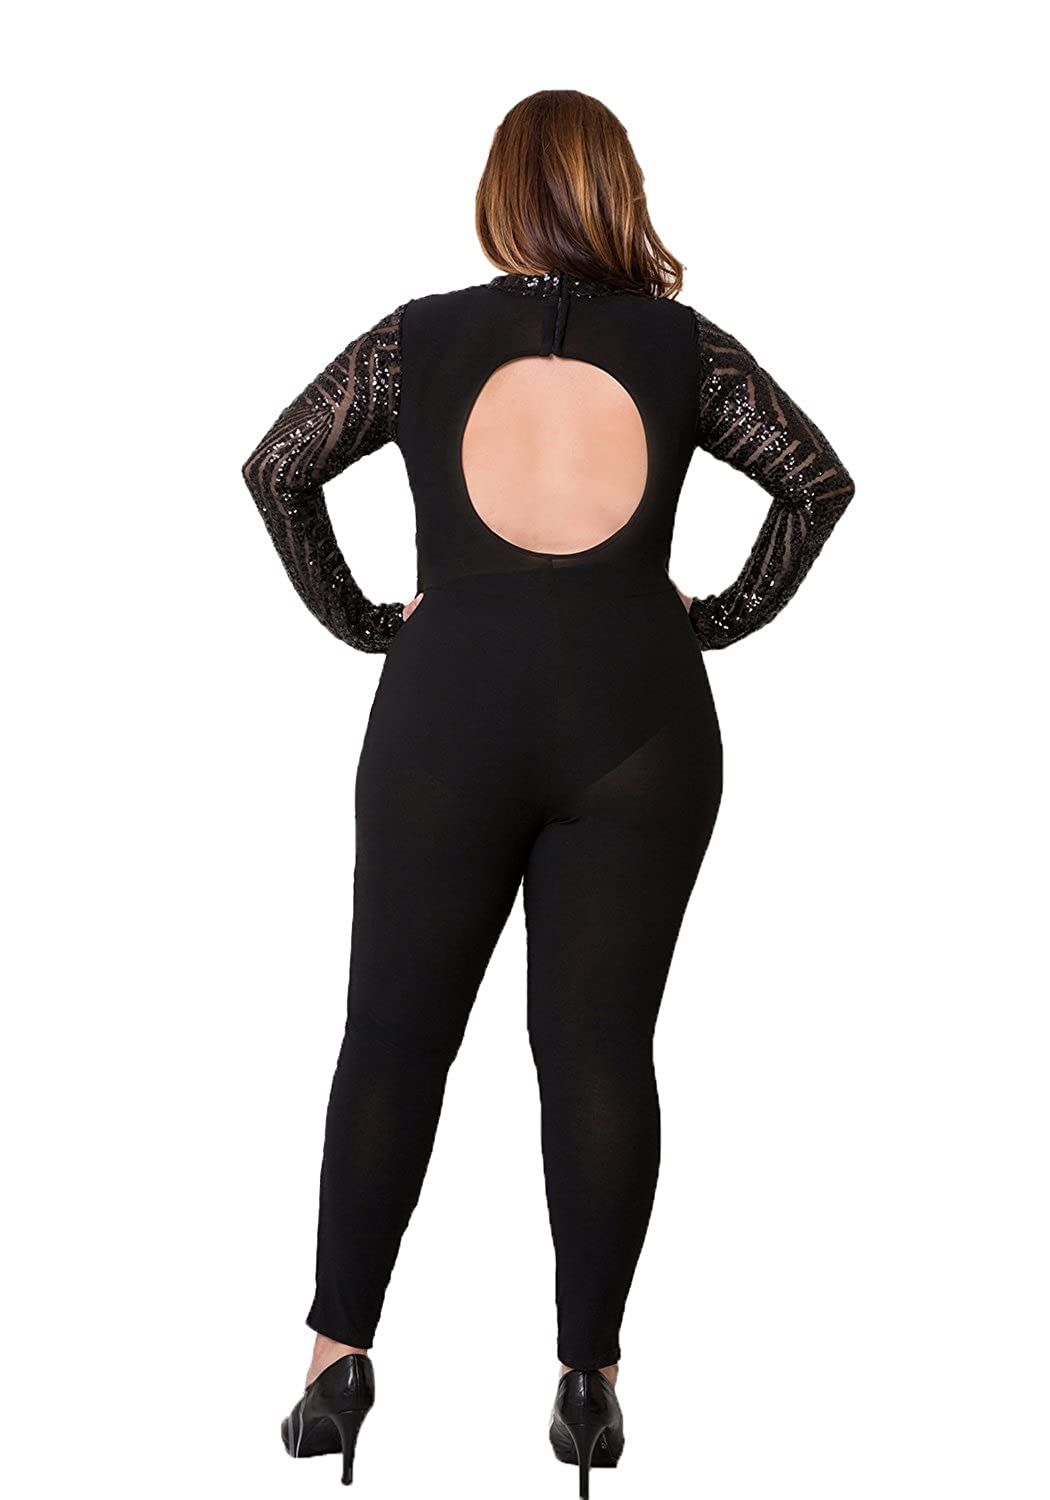 3d47cef5f67 ShopQueen Women s Plus Size Black Sequined Back Cutout Sheer Jumpsuit BLACK  3XL  Amazon.ca  Clothing   Accessories